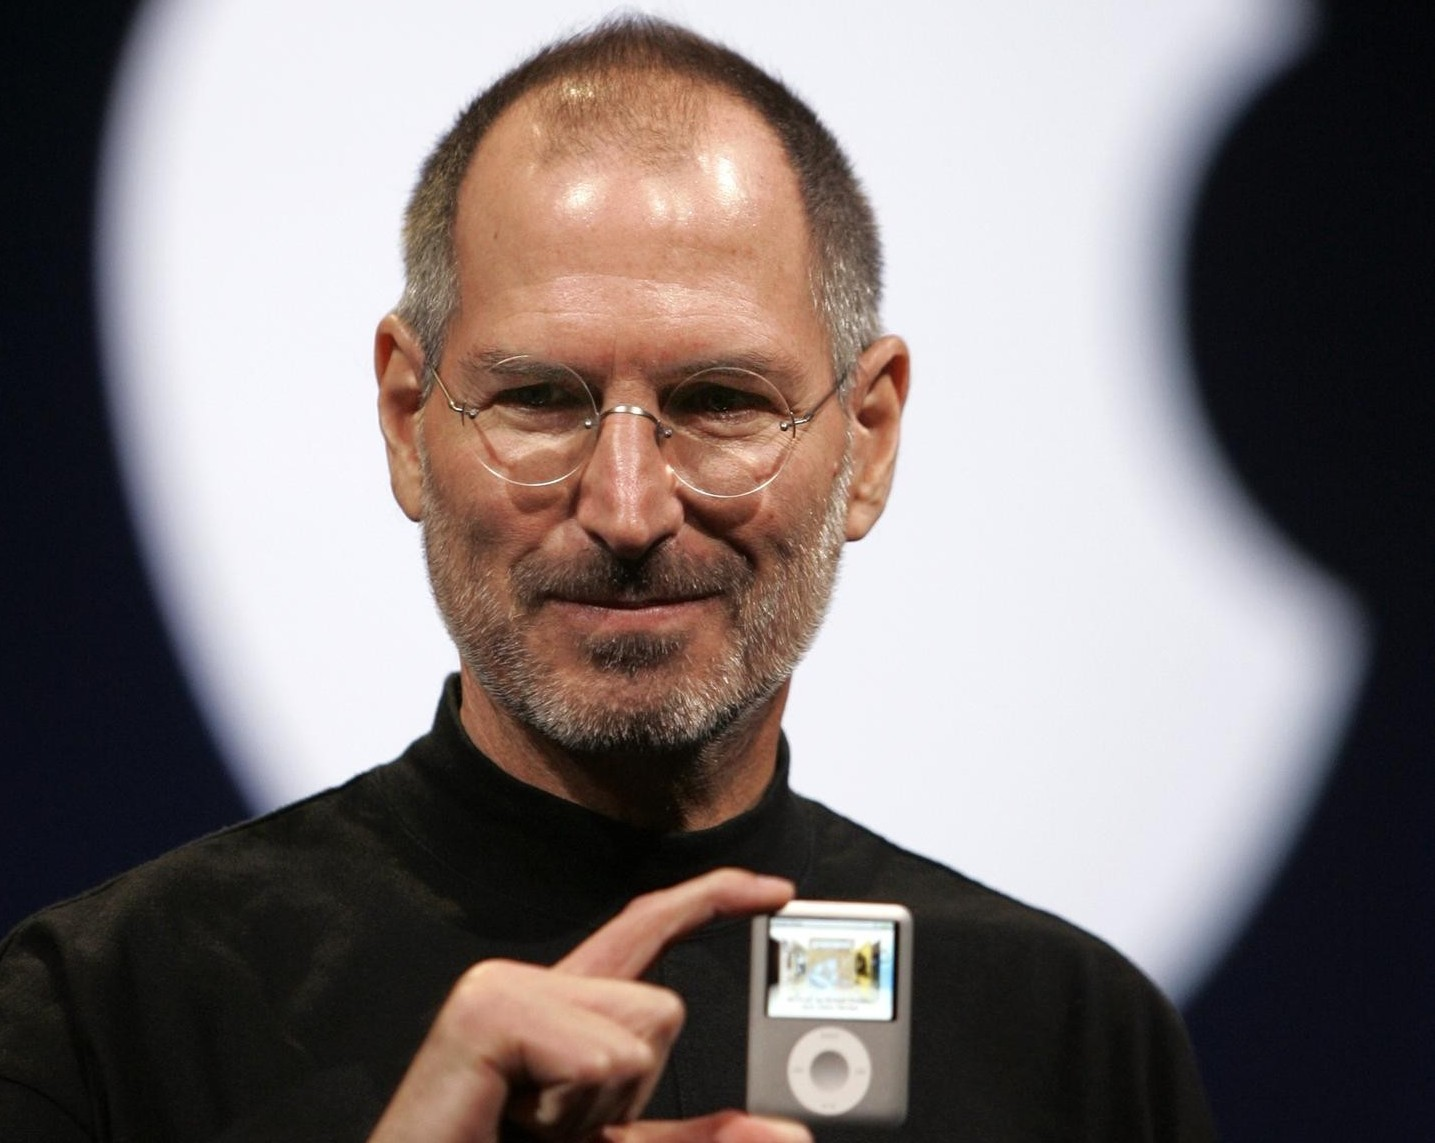 Steve Jobs ensinou a superar a crise